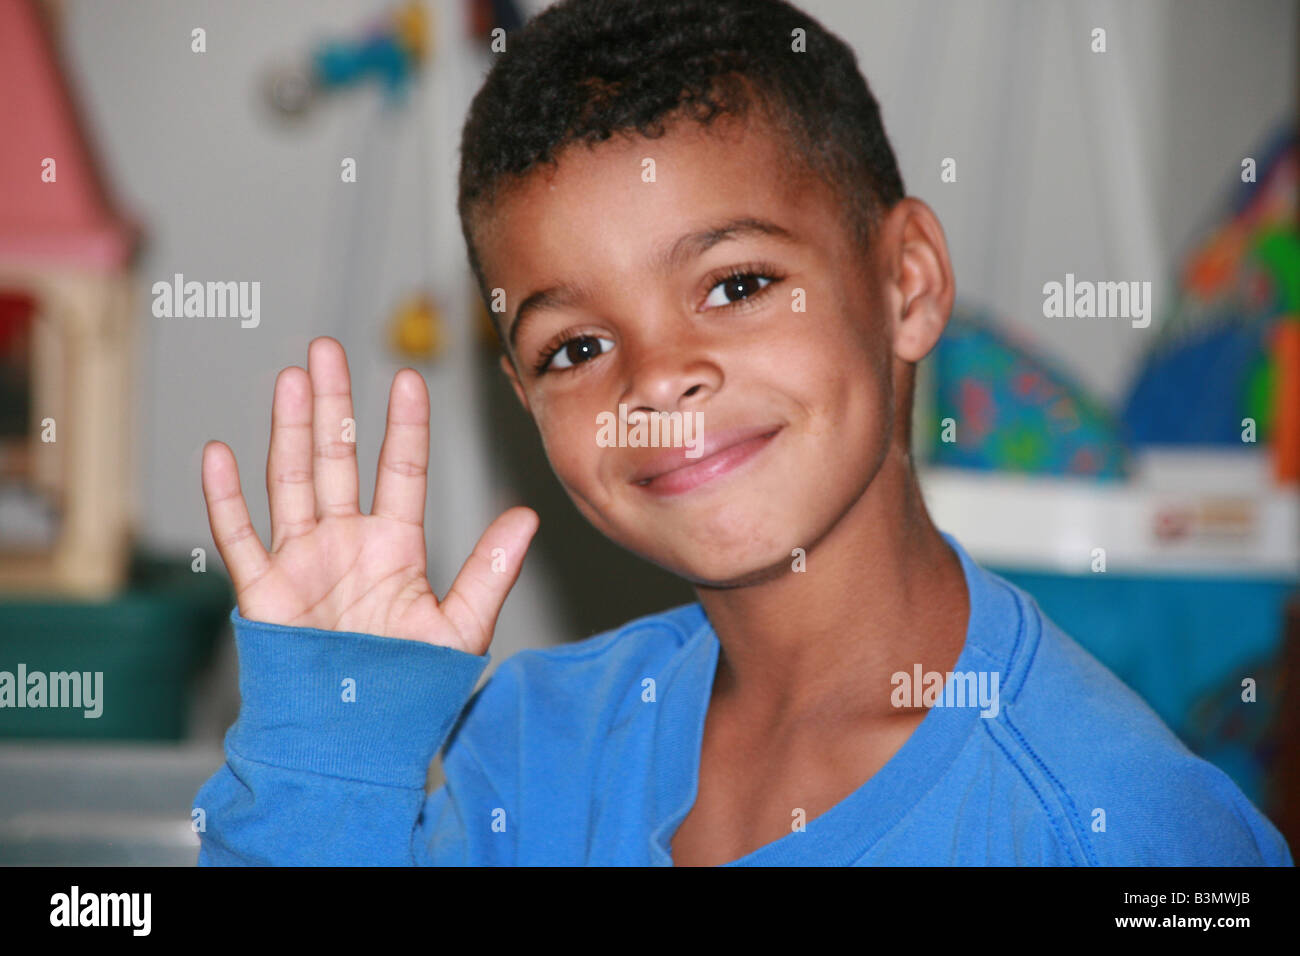 Happy Mixed Race African American Boy Waving His Hand